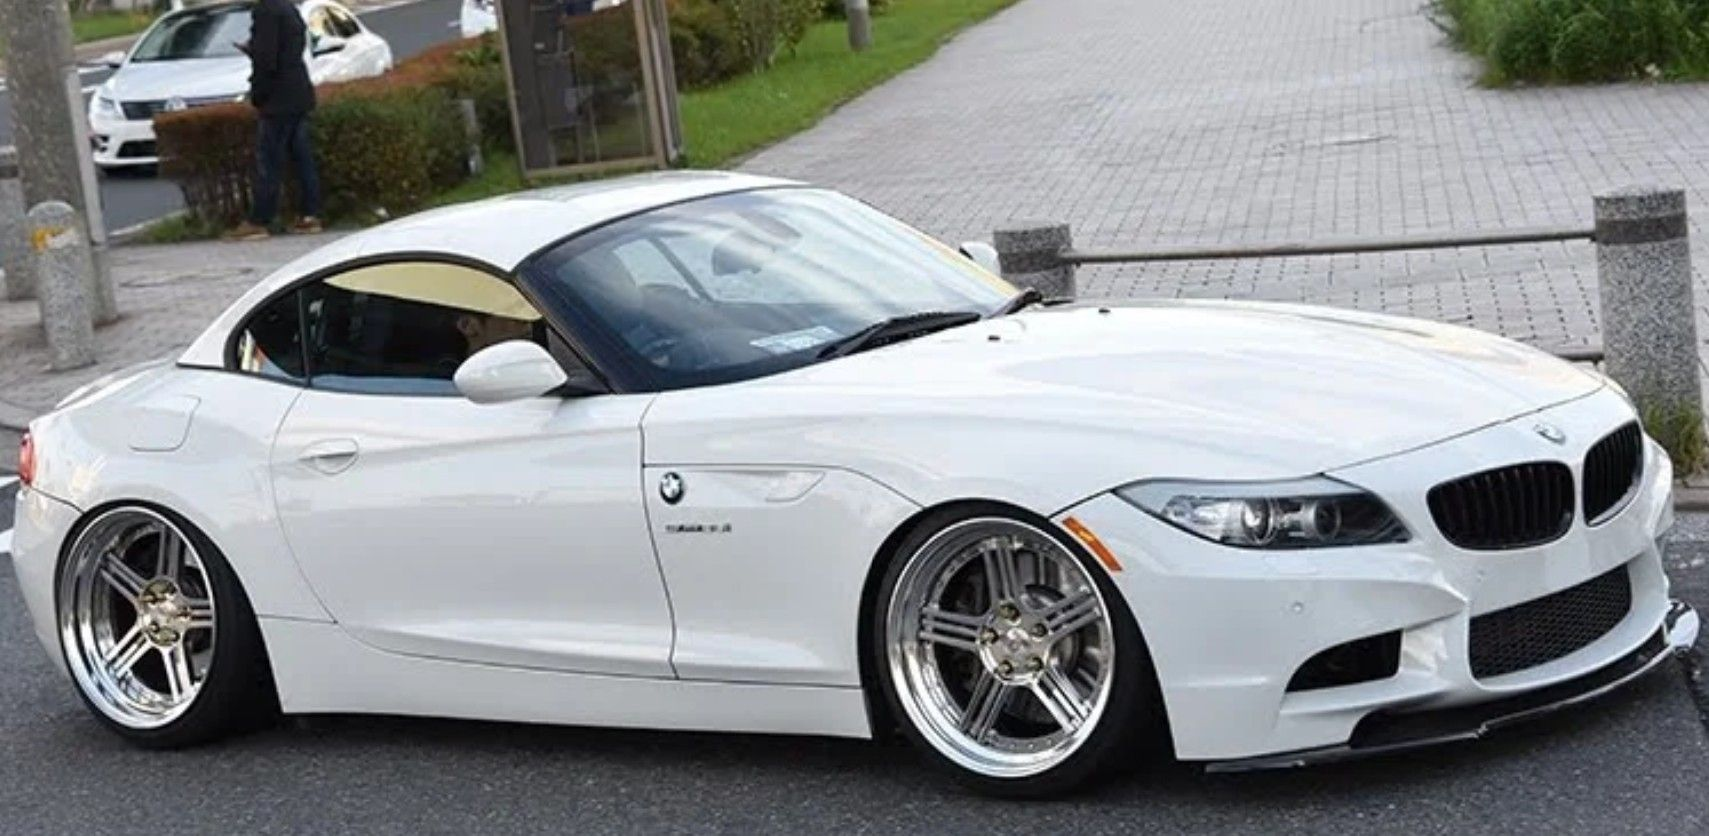 Bmw Z4 E89 Modified Tuning Lowered Wheels Front Lip